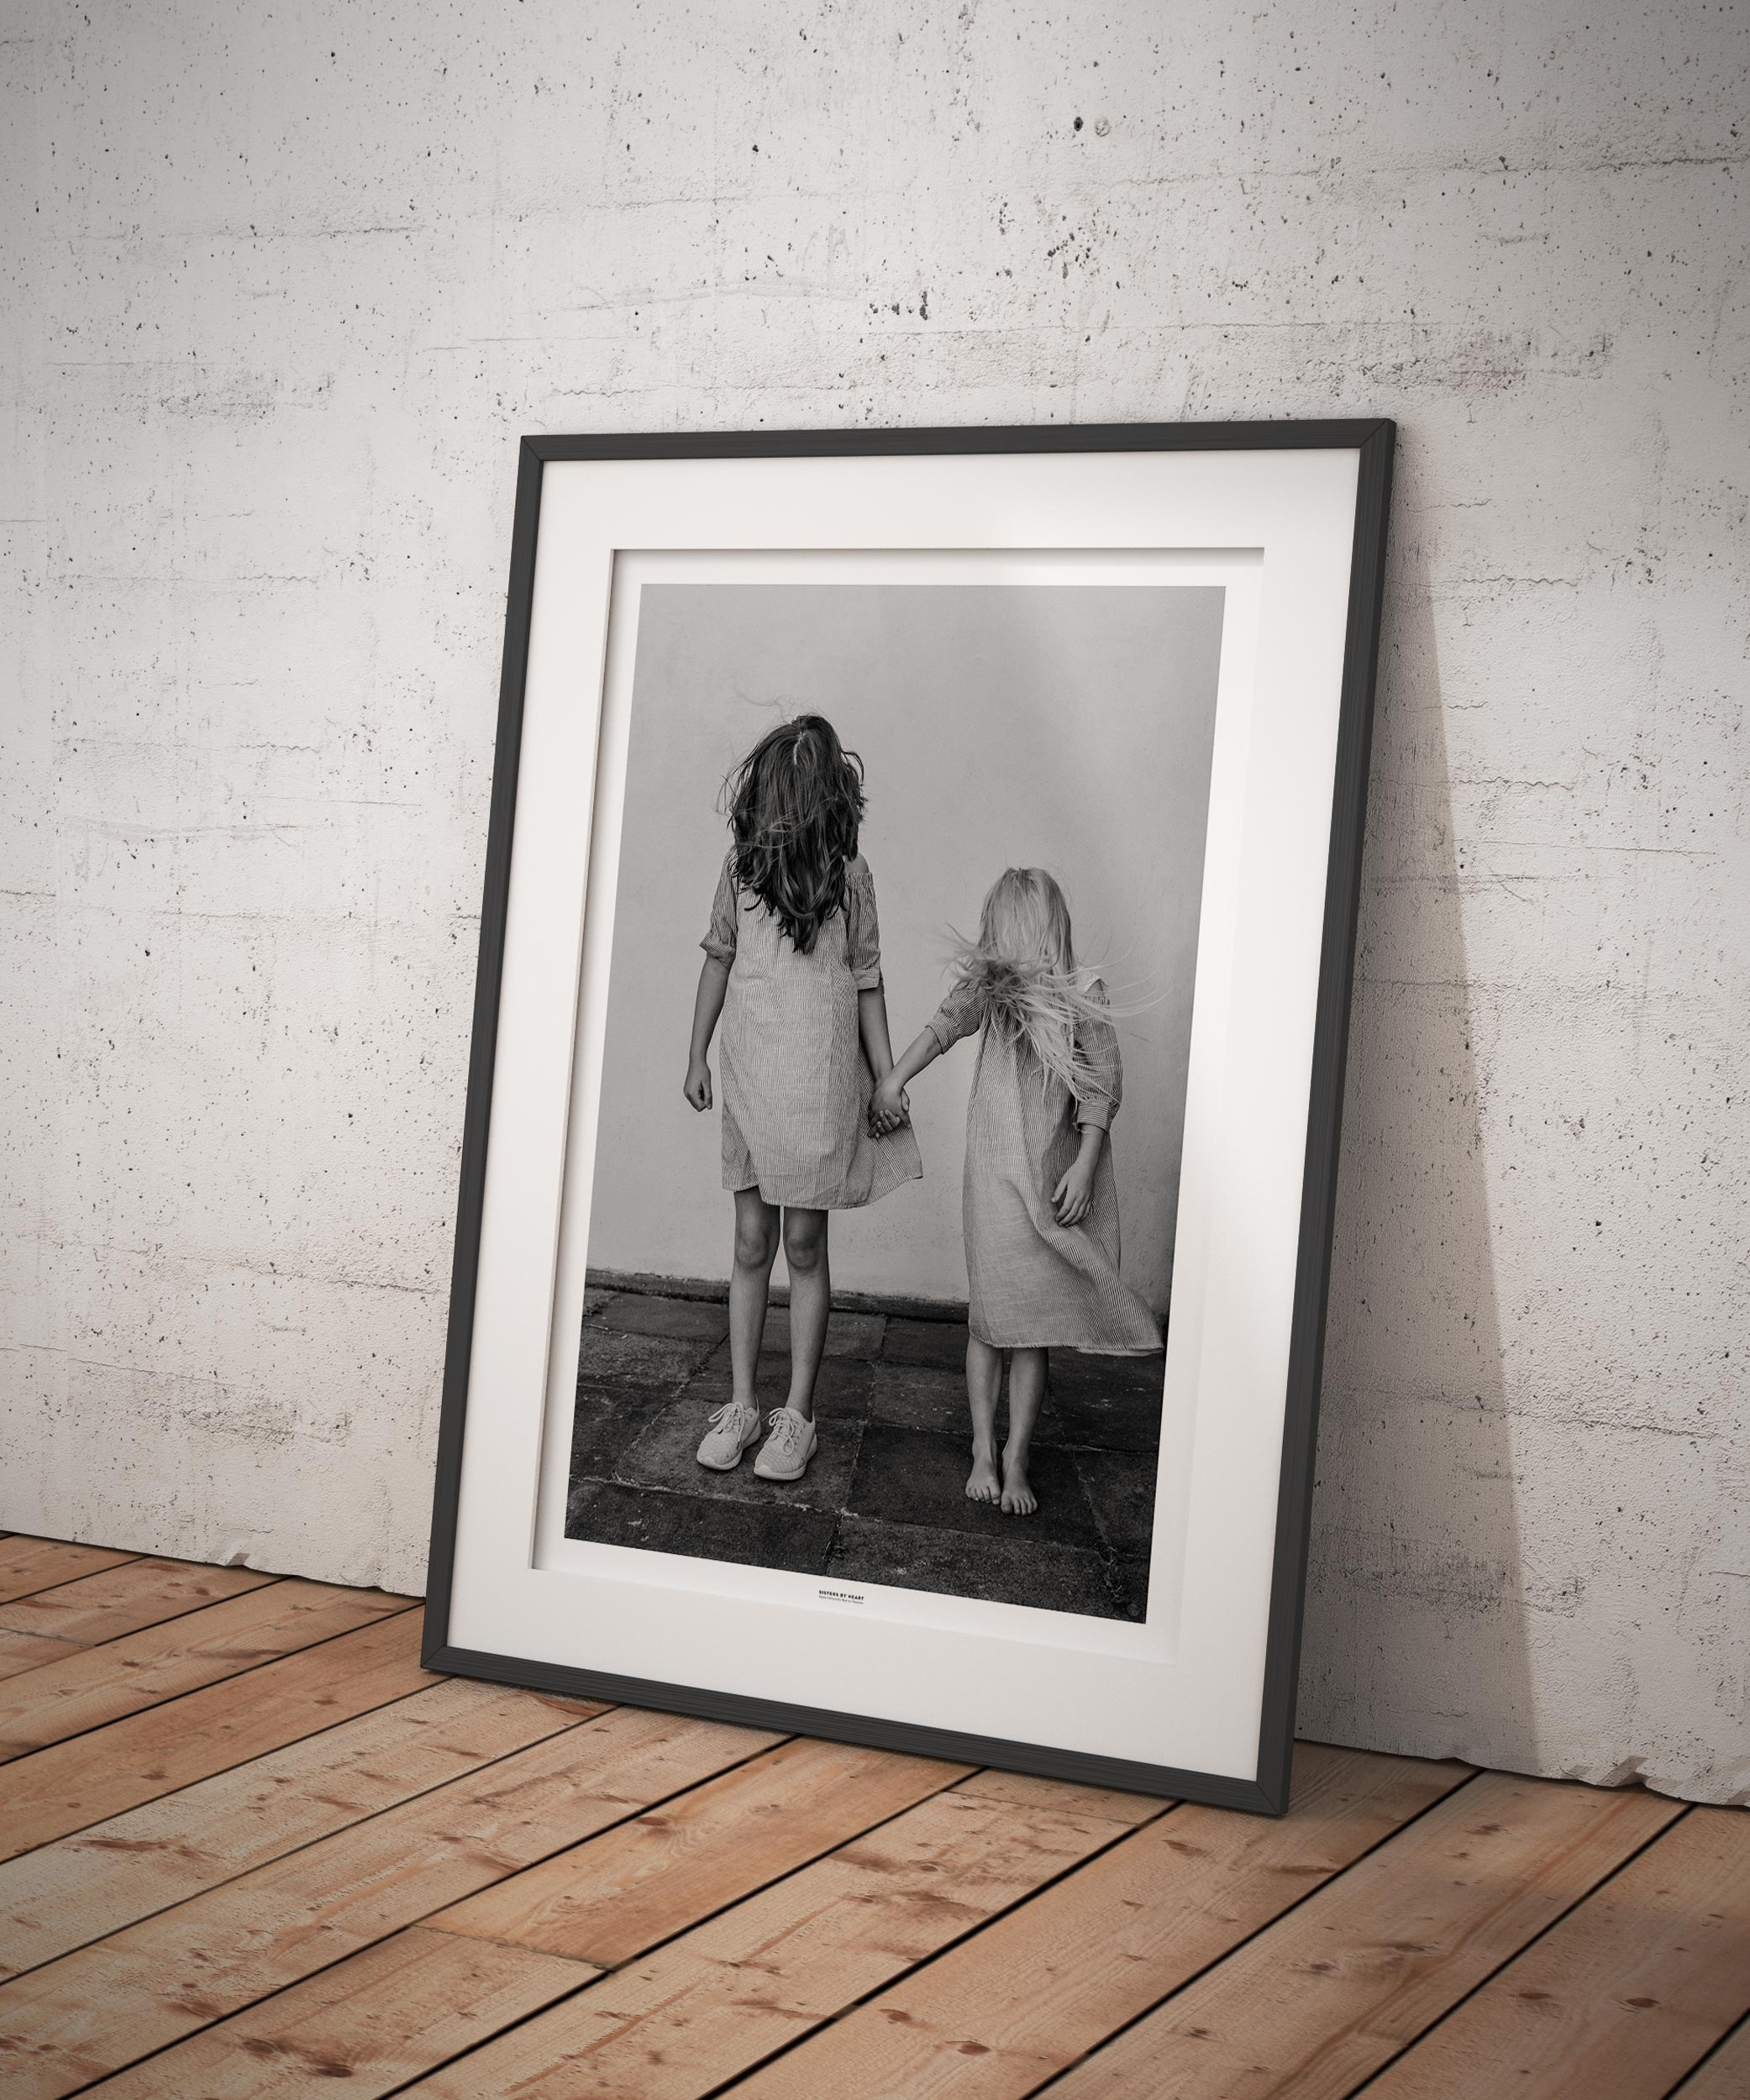 Sisters By Heart. Photo by photographer Martin Thaulow. Open Edition (seen in a frame in an environment. The frame is not part of sale). Buy high quality print.